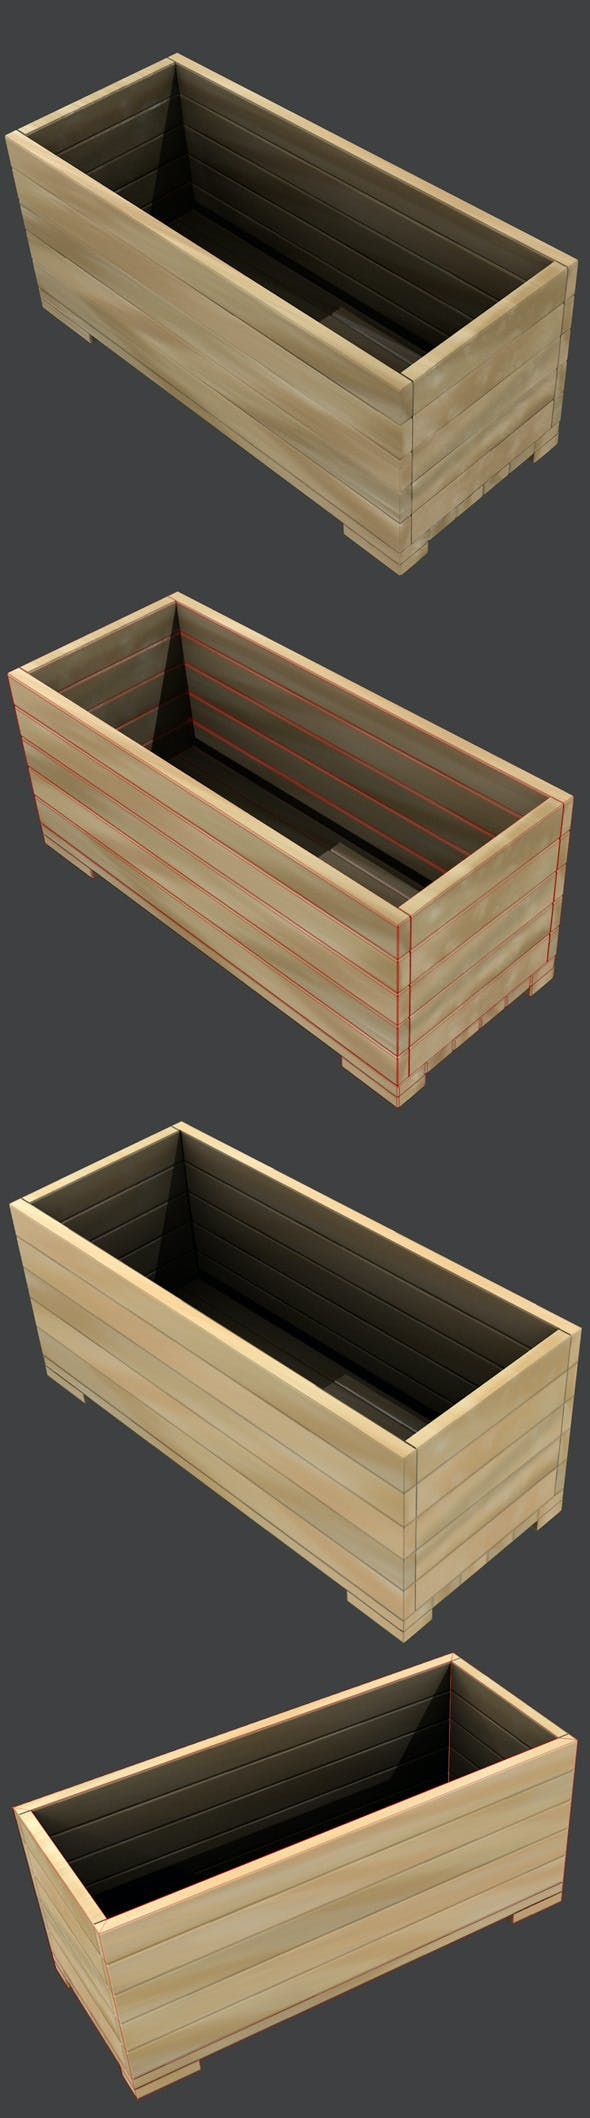 Wooden Box / Flower Pot High and Low-poly - 3DOcean Item for Sale